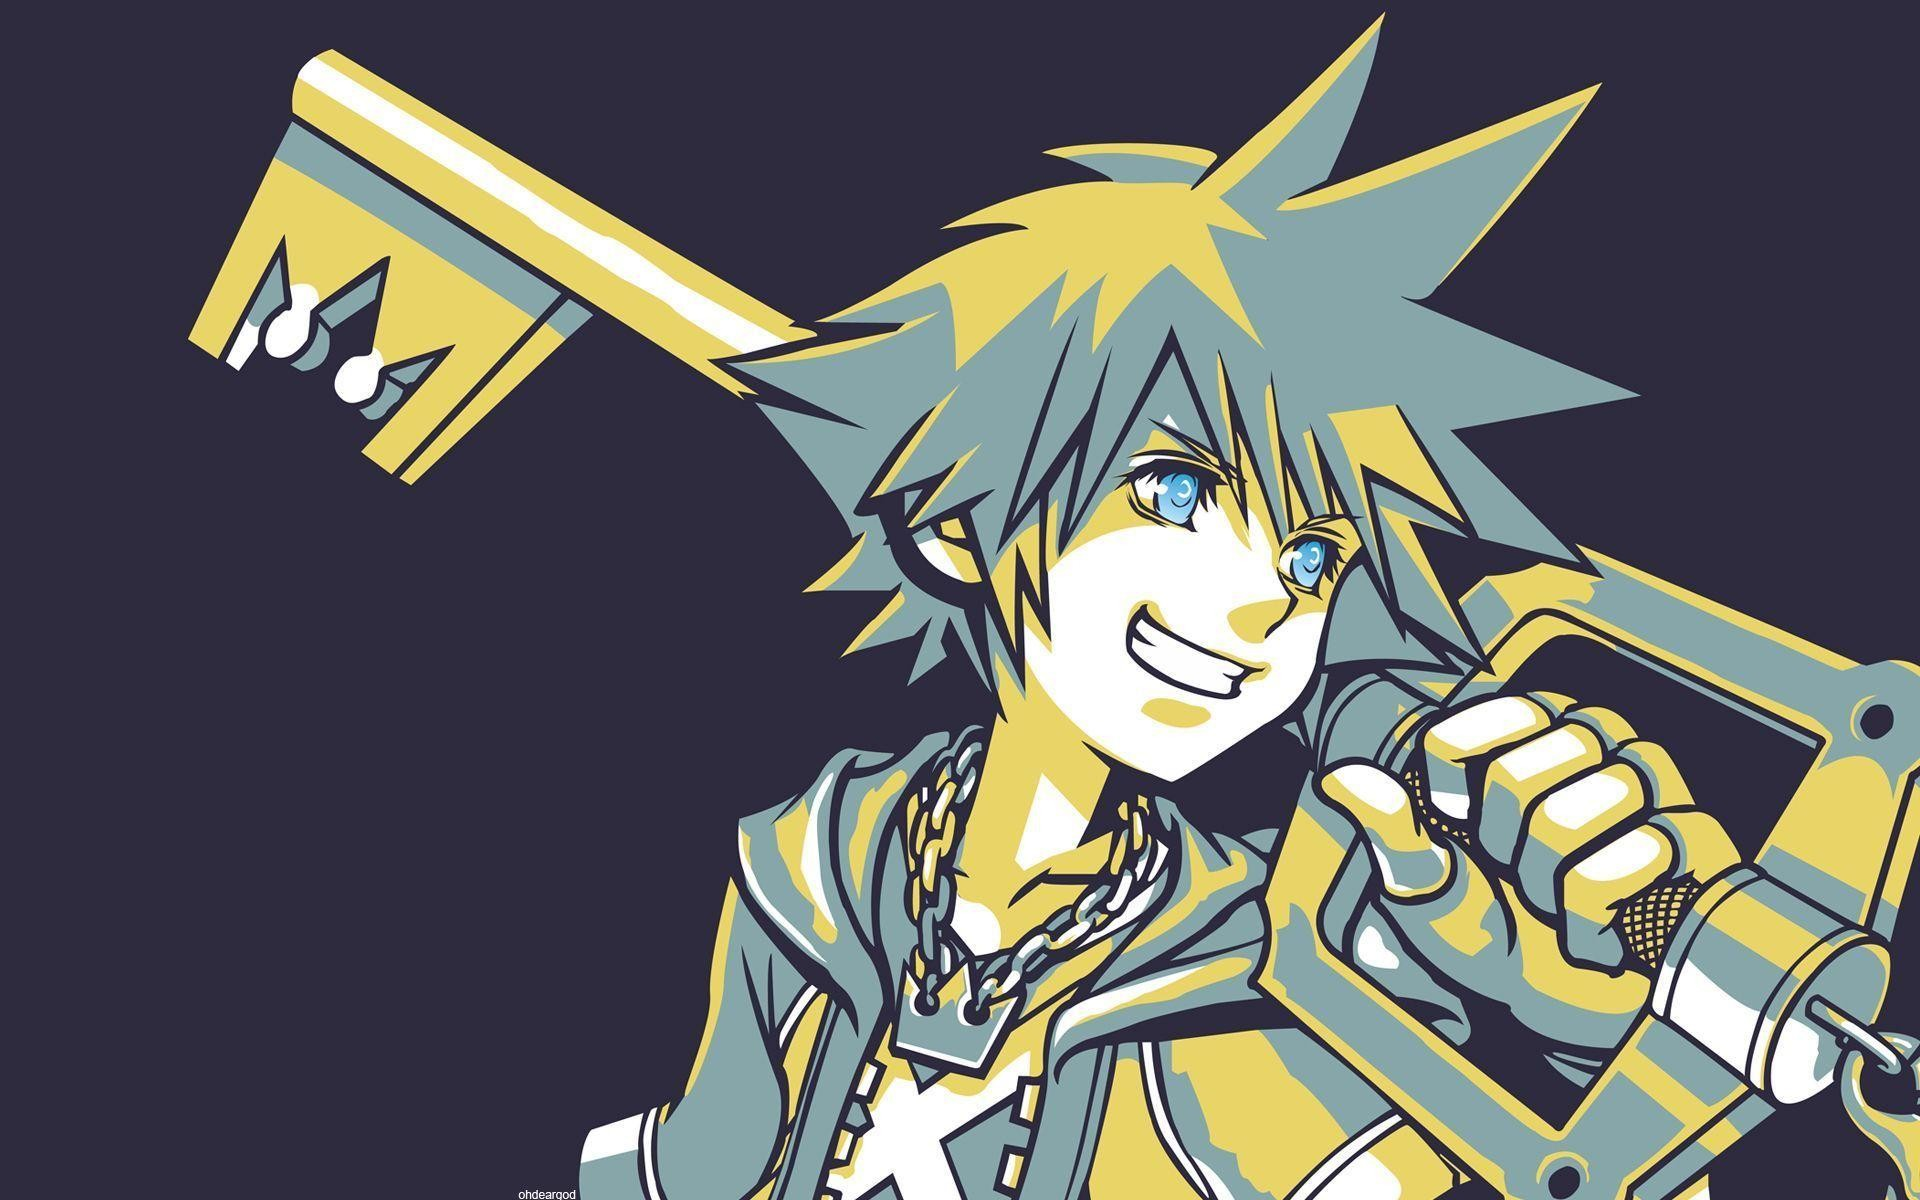 1920x1200 Kingdom Hearts Sora Wallpaper Hd - Viewing Gallery